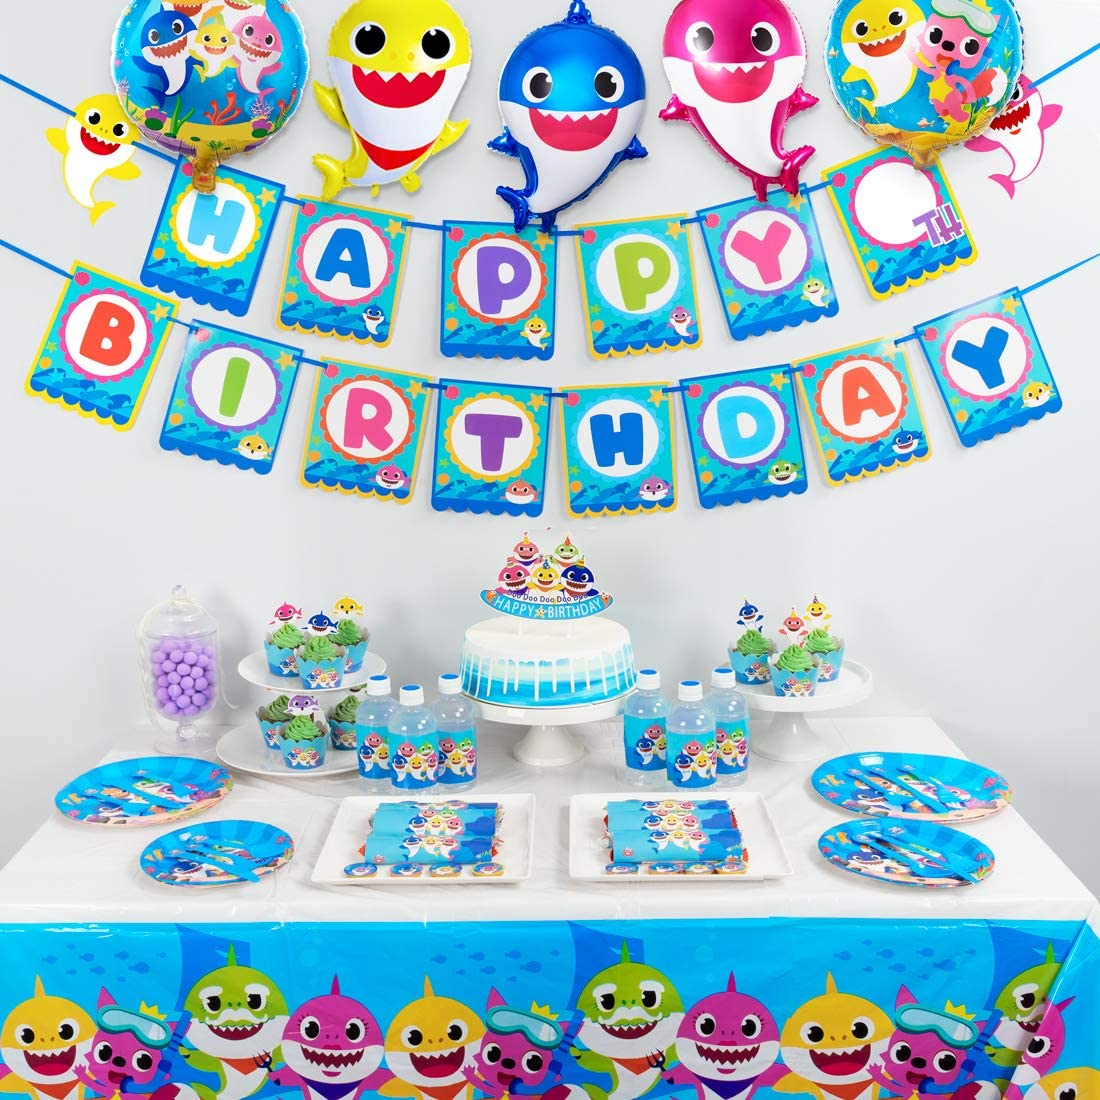 Mega Shark Party Decorations for Baby,140 Pcs Shark Birthday Party Supplies,Shark Themed Birthday Party Packs with Balloons,Banner,Tablecloth,Tableware,Cupcake Toppers and Wrappers,Bottle Labels, Chocolate Stickers for Boys Girls Kids